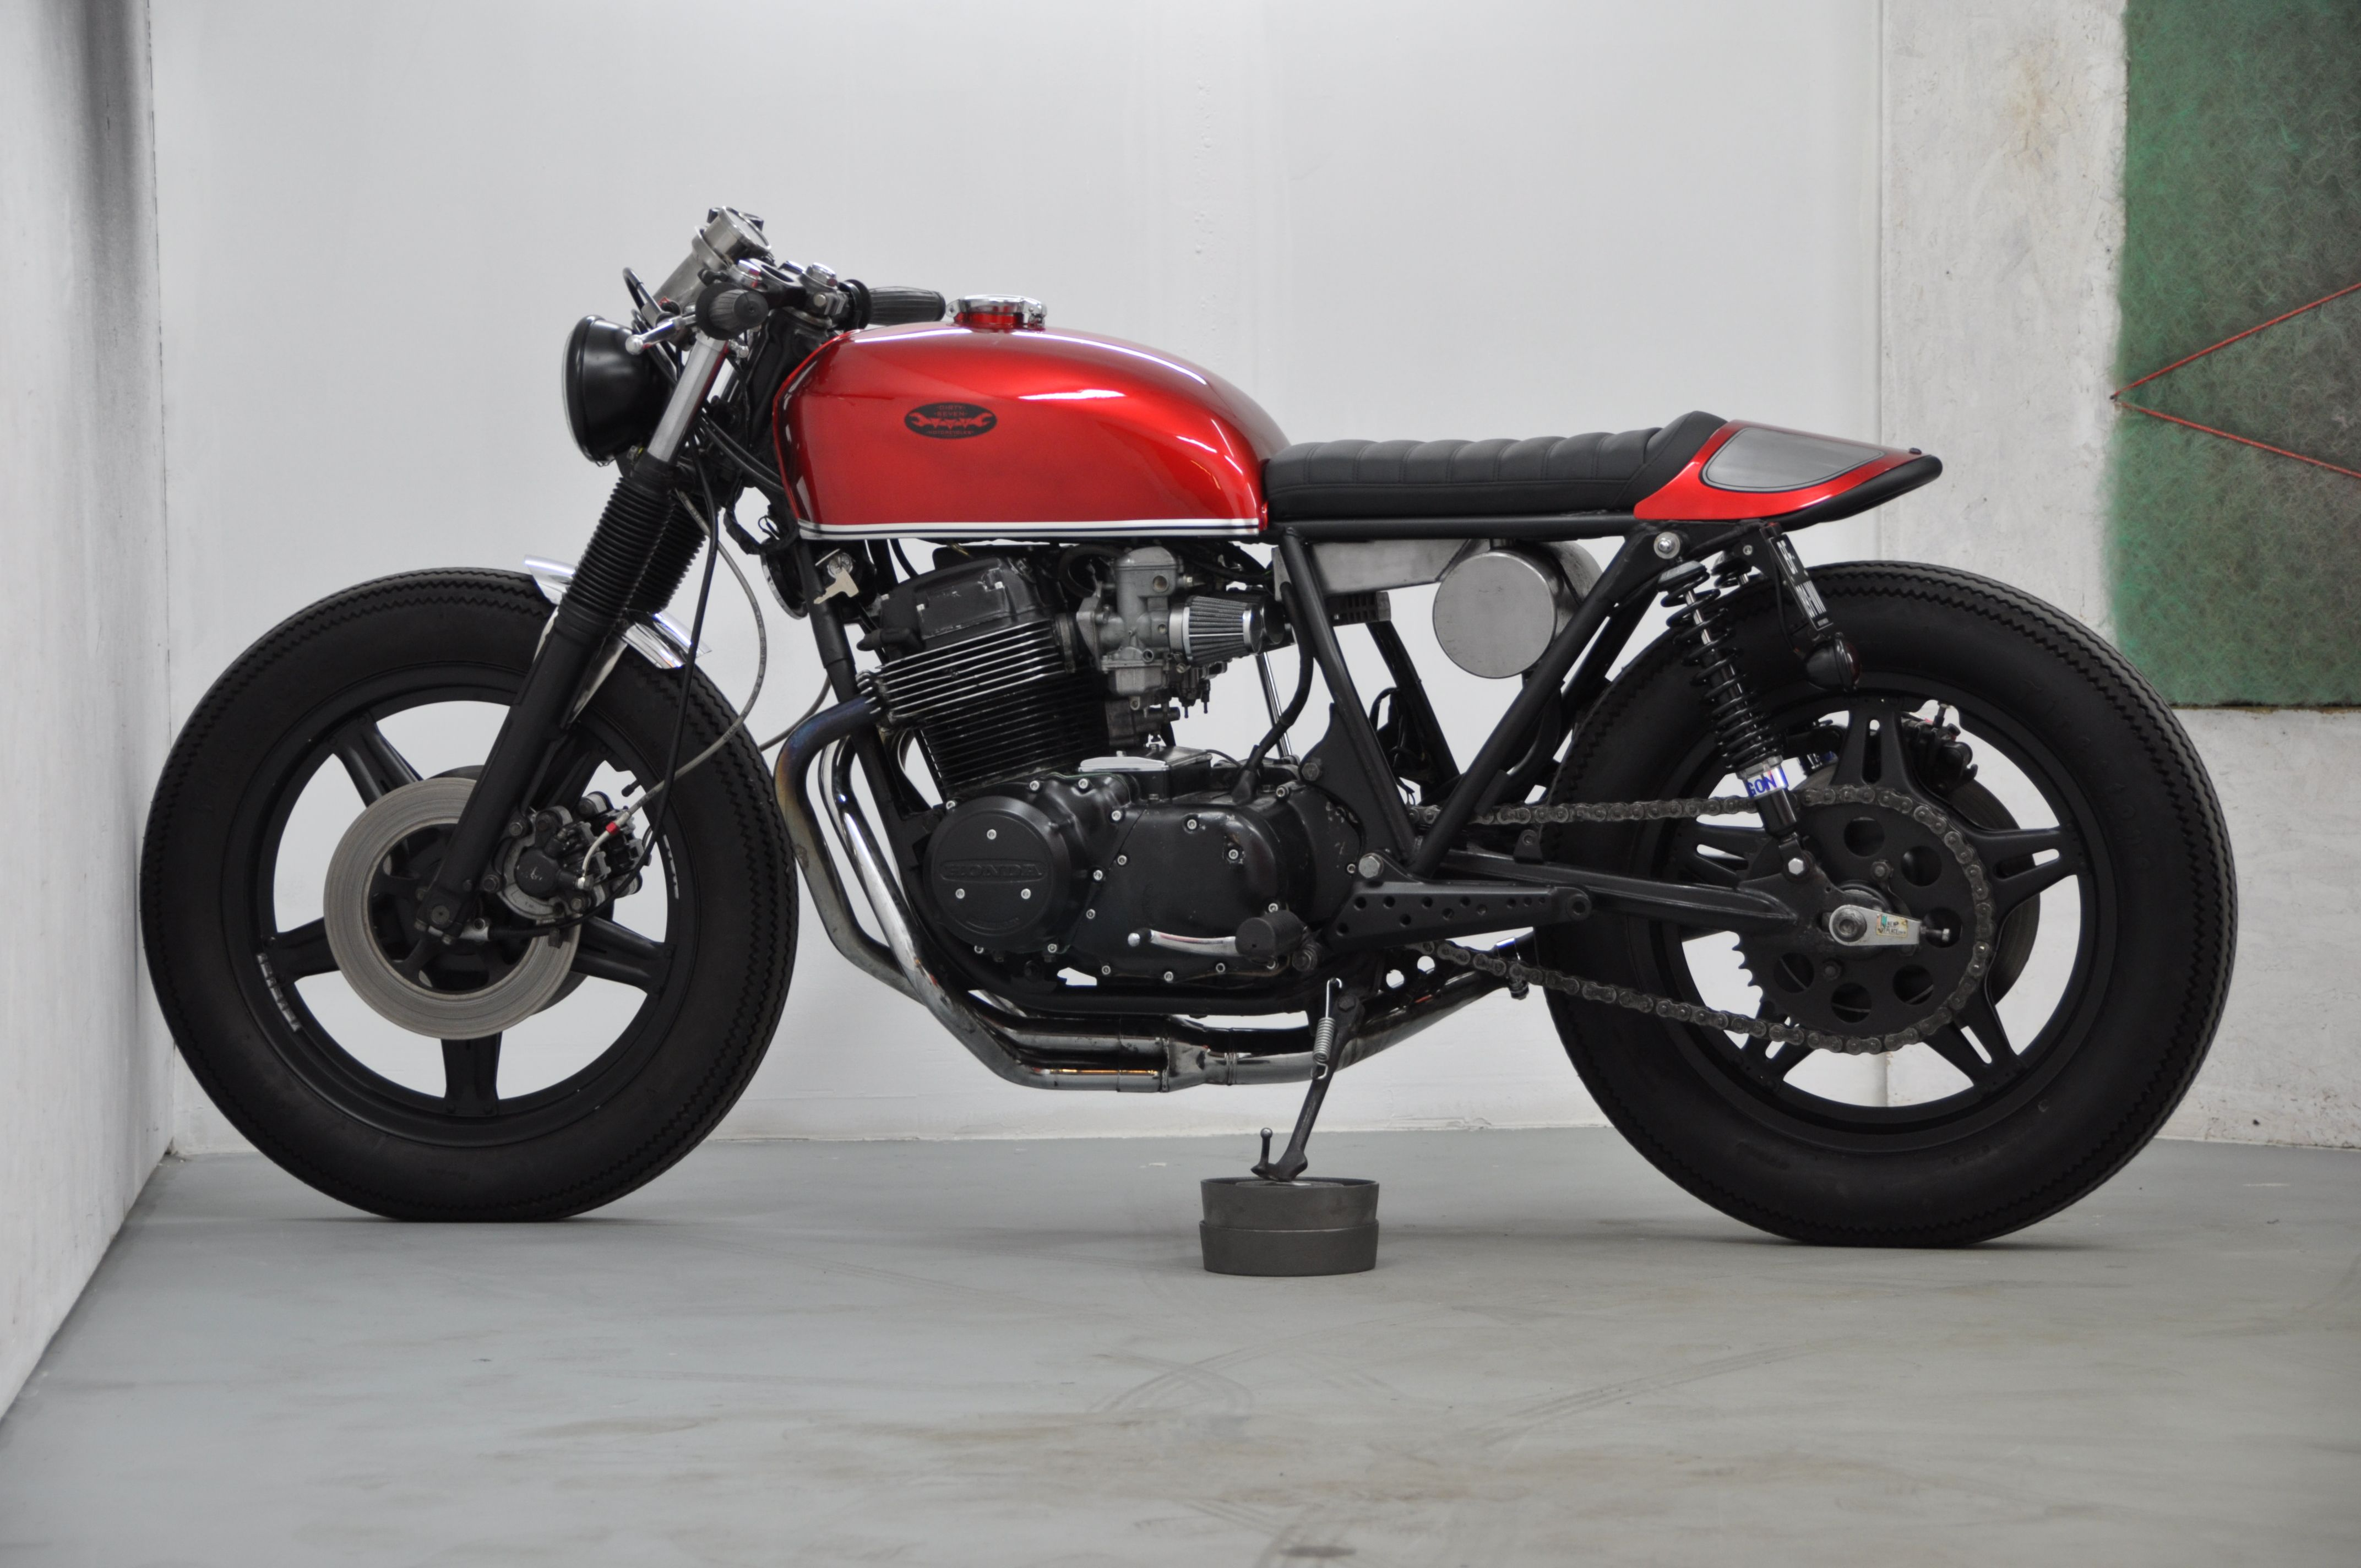 Honda Cb 750 Four F2 Cafe Racer By Dirty Seven Motorcycles Moto